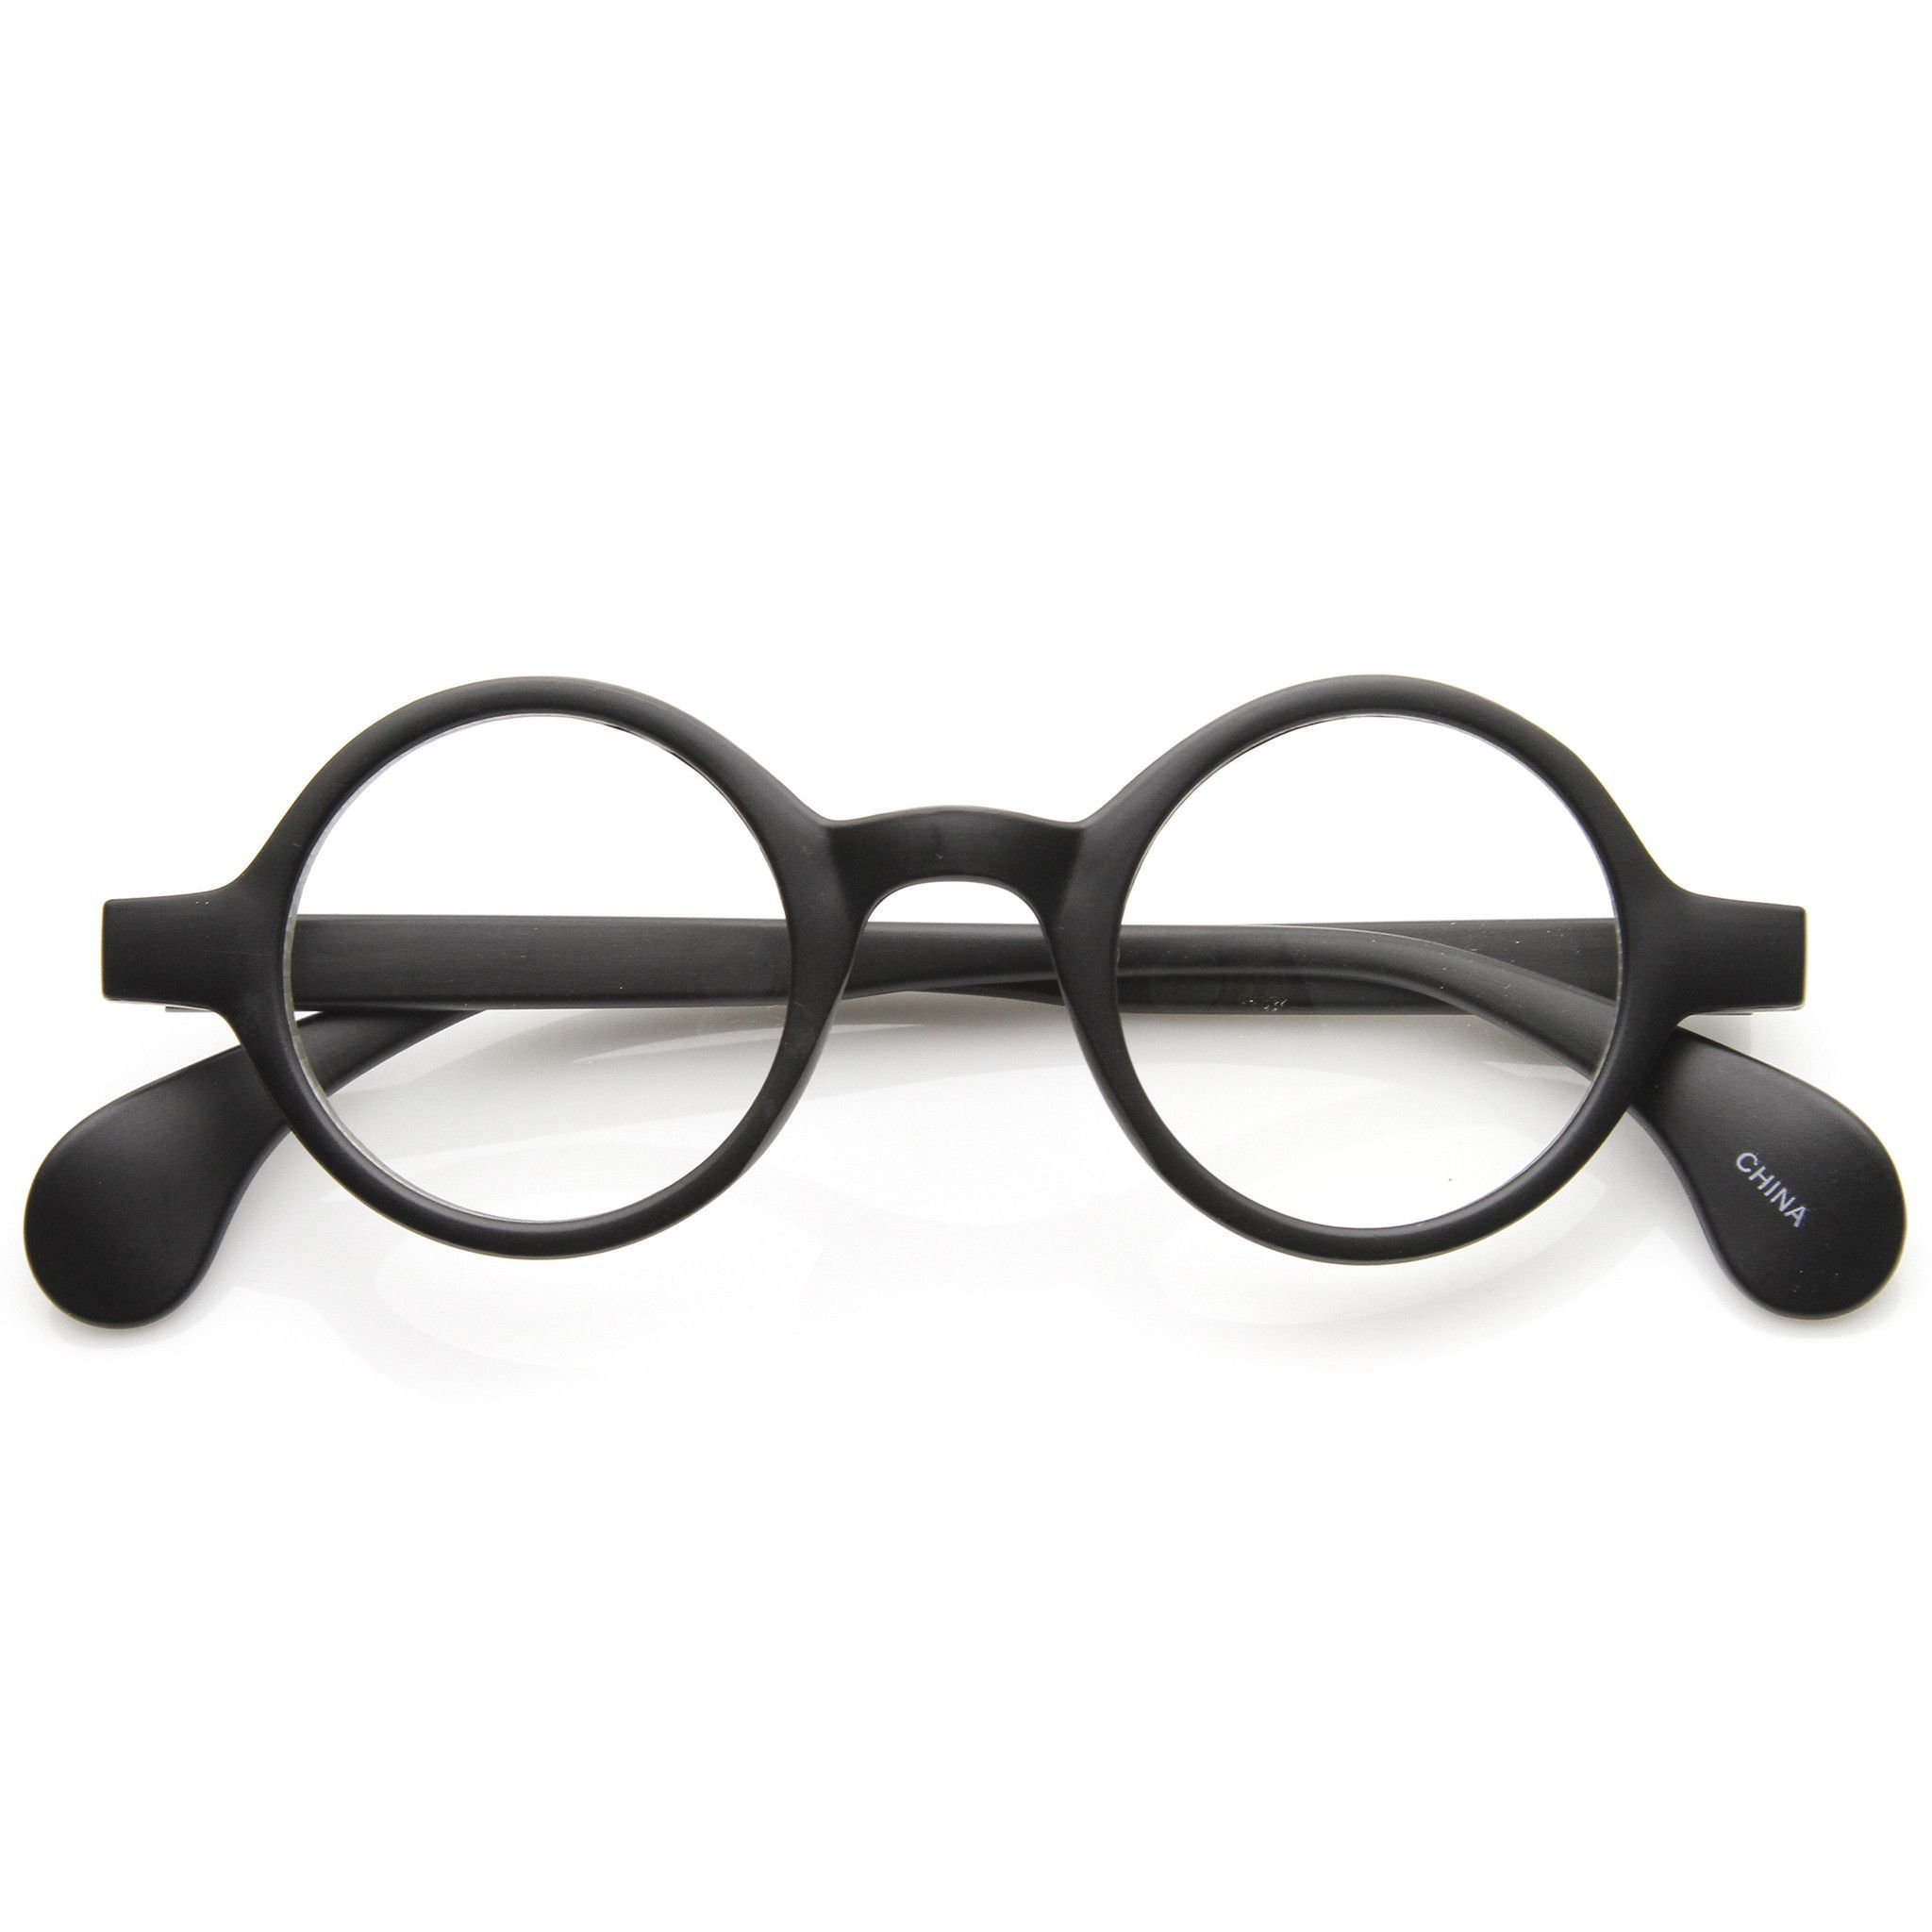 9a84b882fd7 Description - Measurements - Shipping - Classic round Lennon style frame  that features horned rim temples with bold end tips and clear lenses.